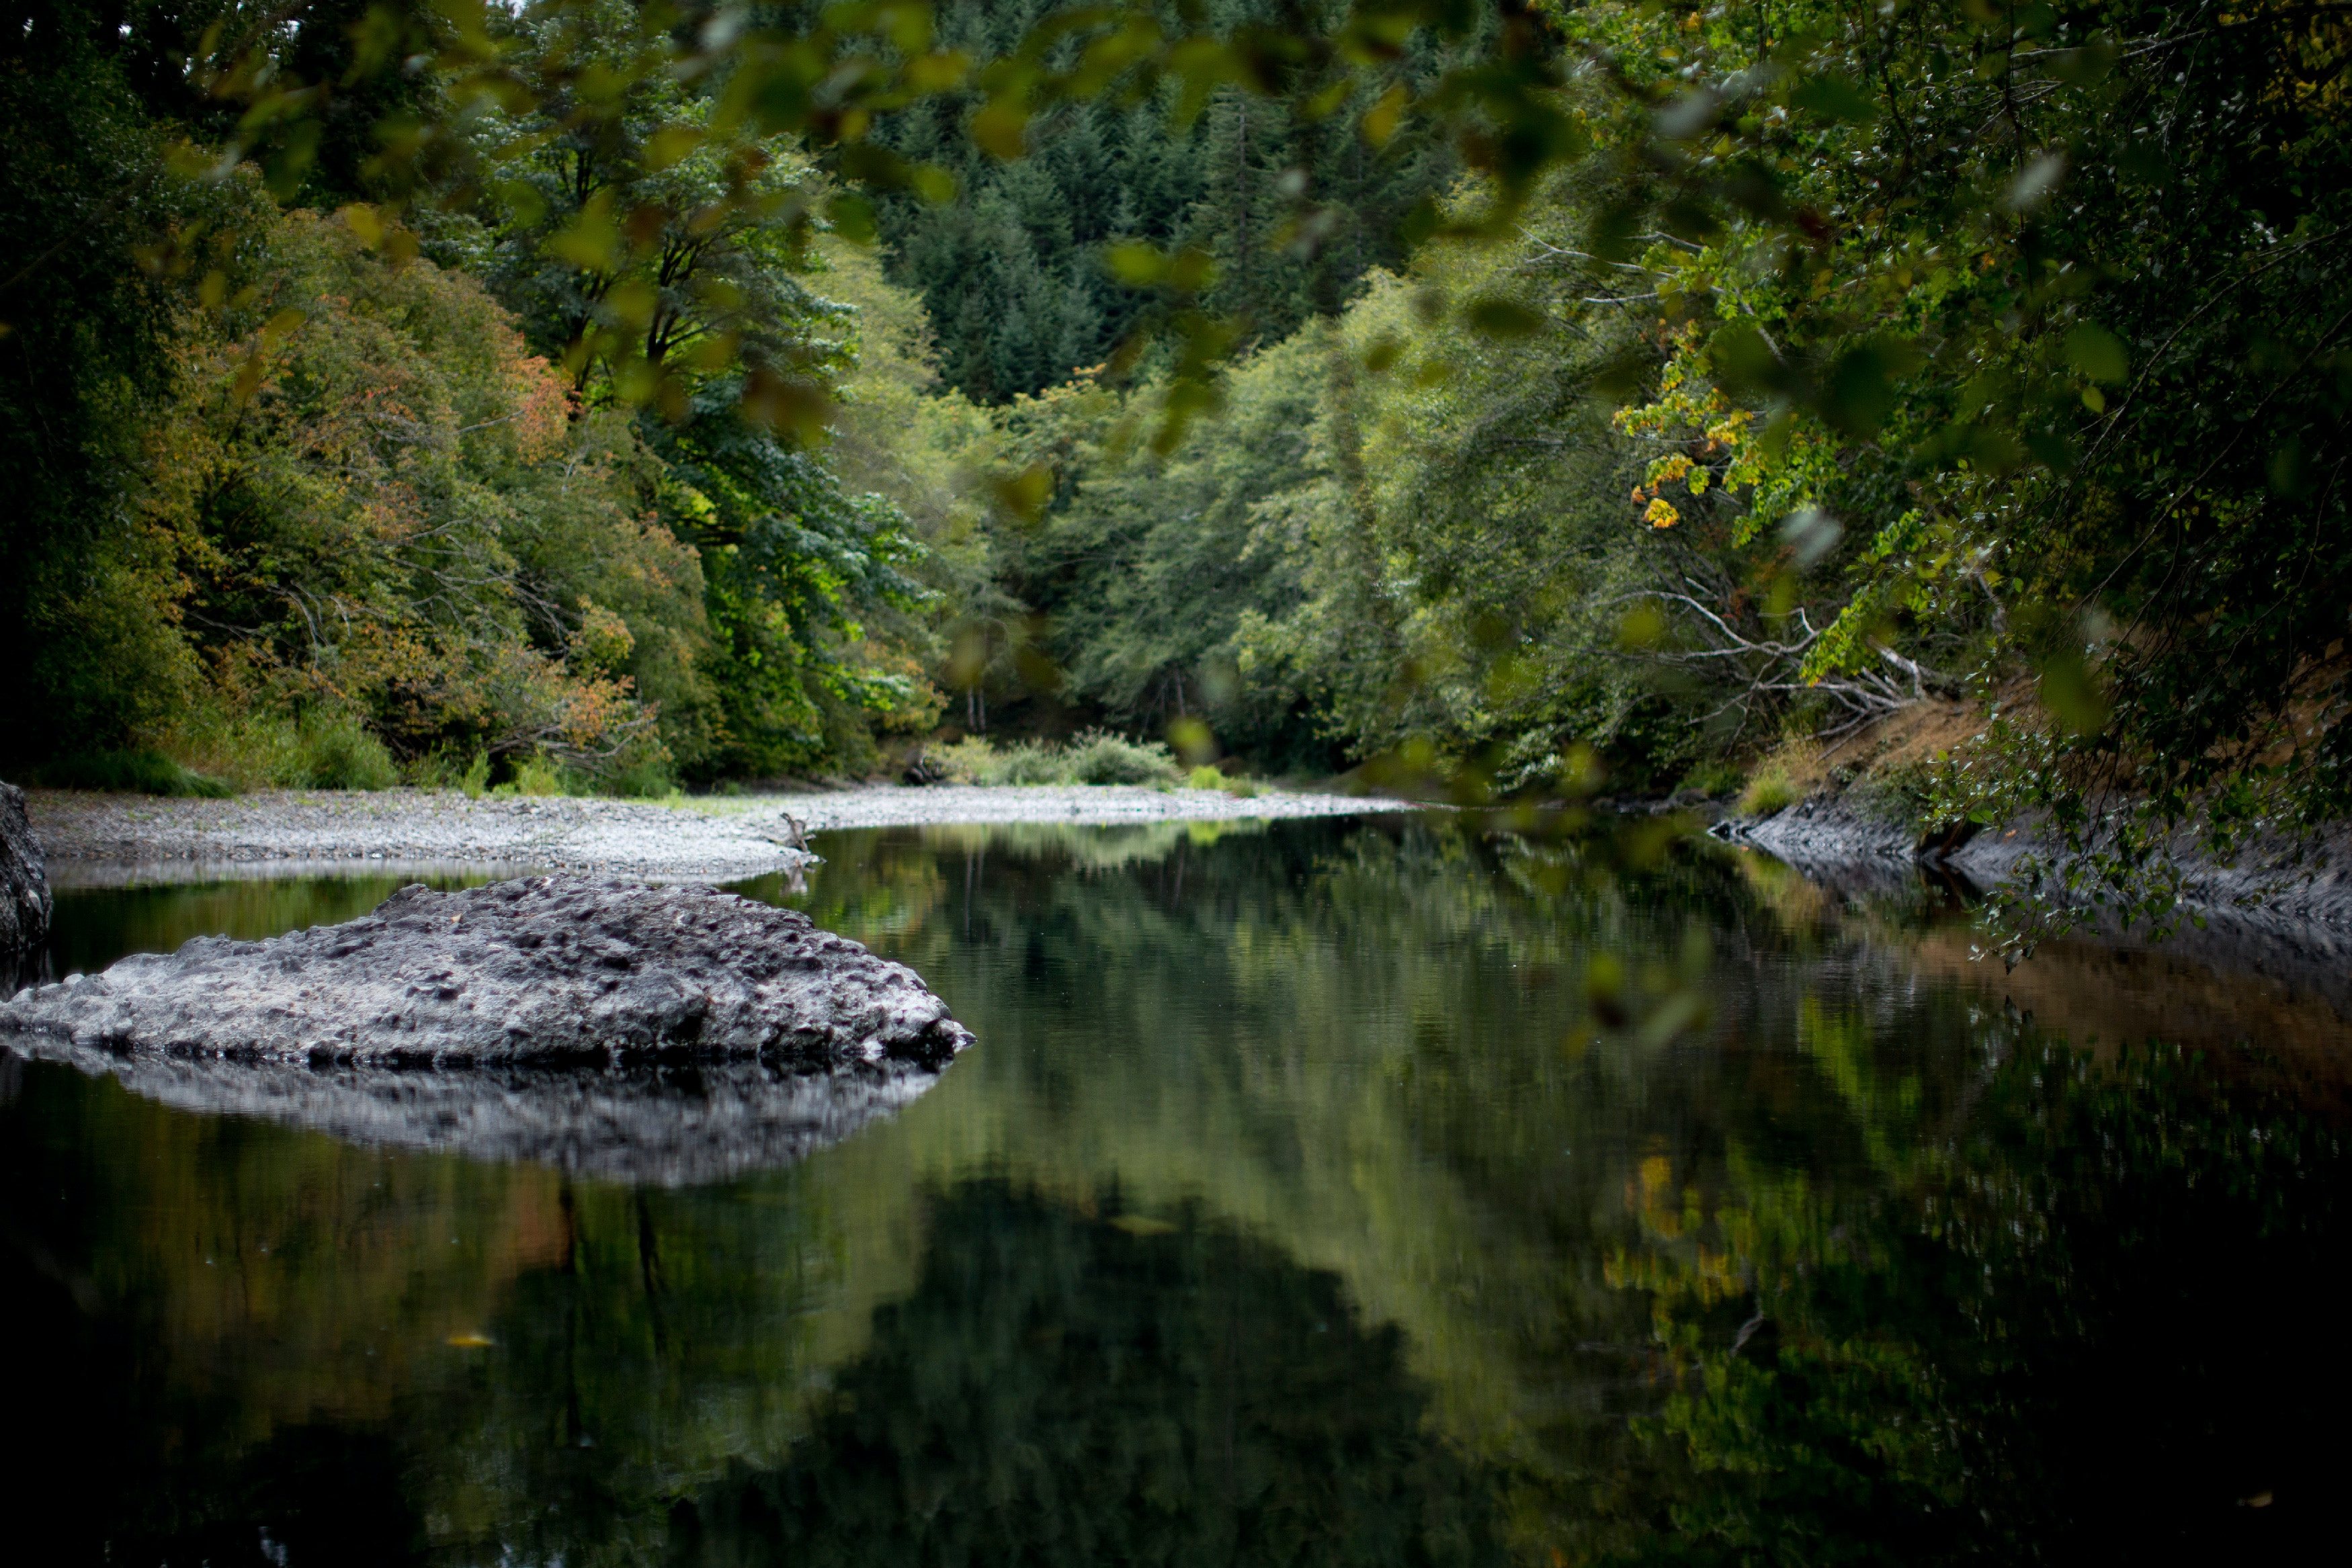 OREGON COAST, OR - SEPTEMBER 8: The Siletz River, which runs through the Oregon's coastal mountain ranges. September 8, 2018 (Photo by Beth Nakamura For The Intercept)